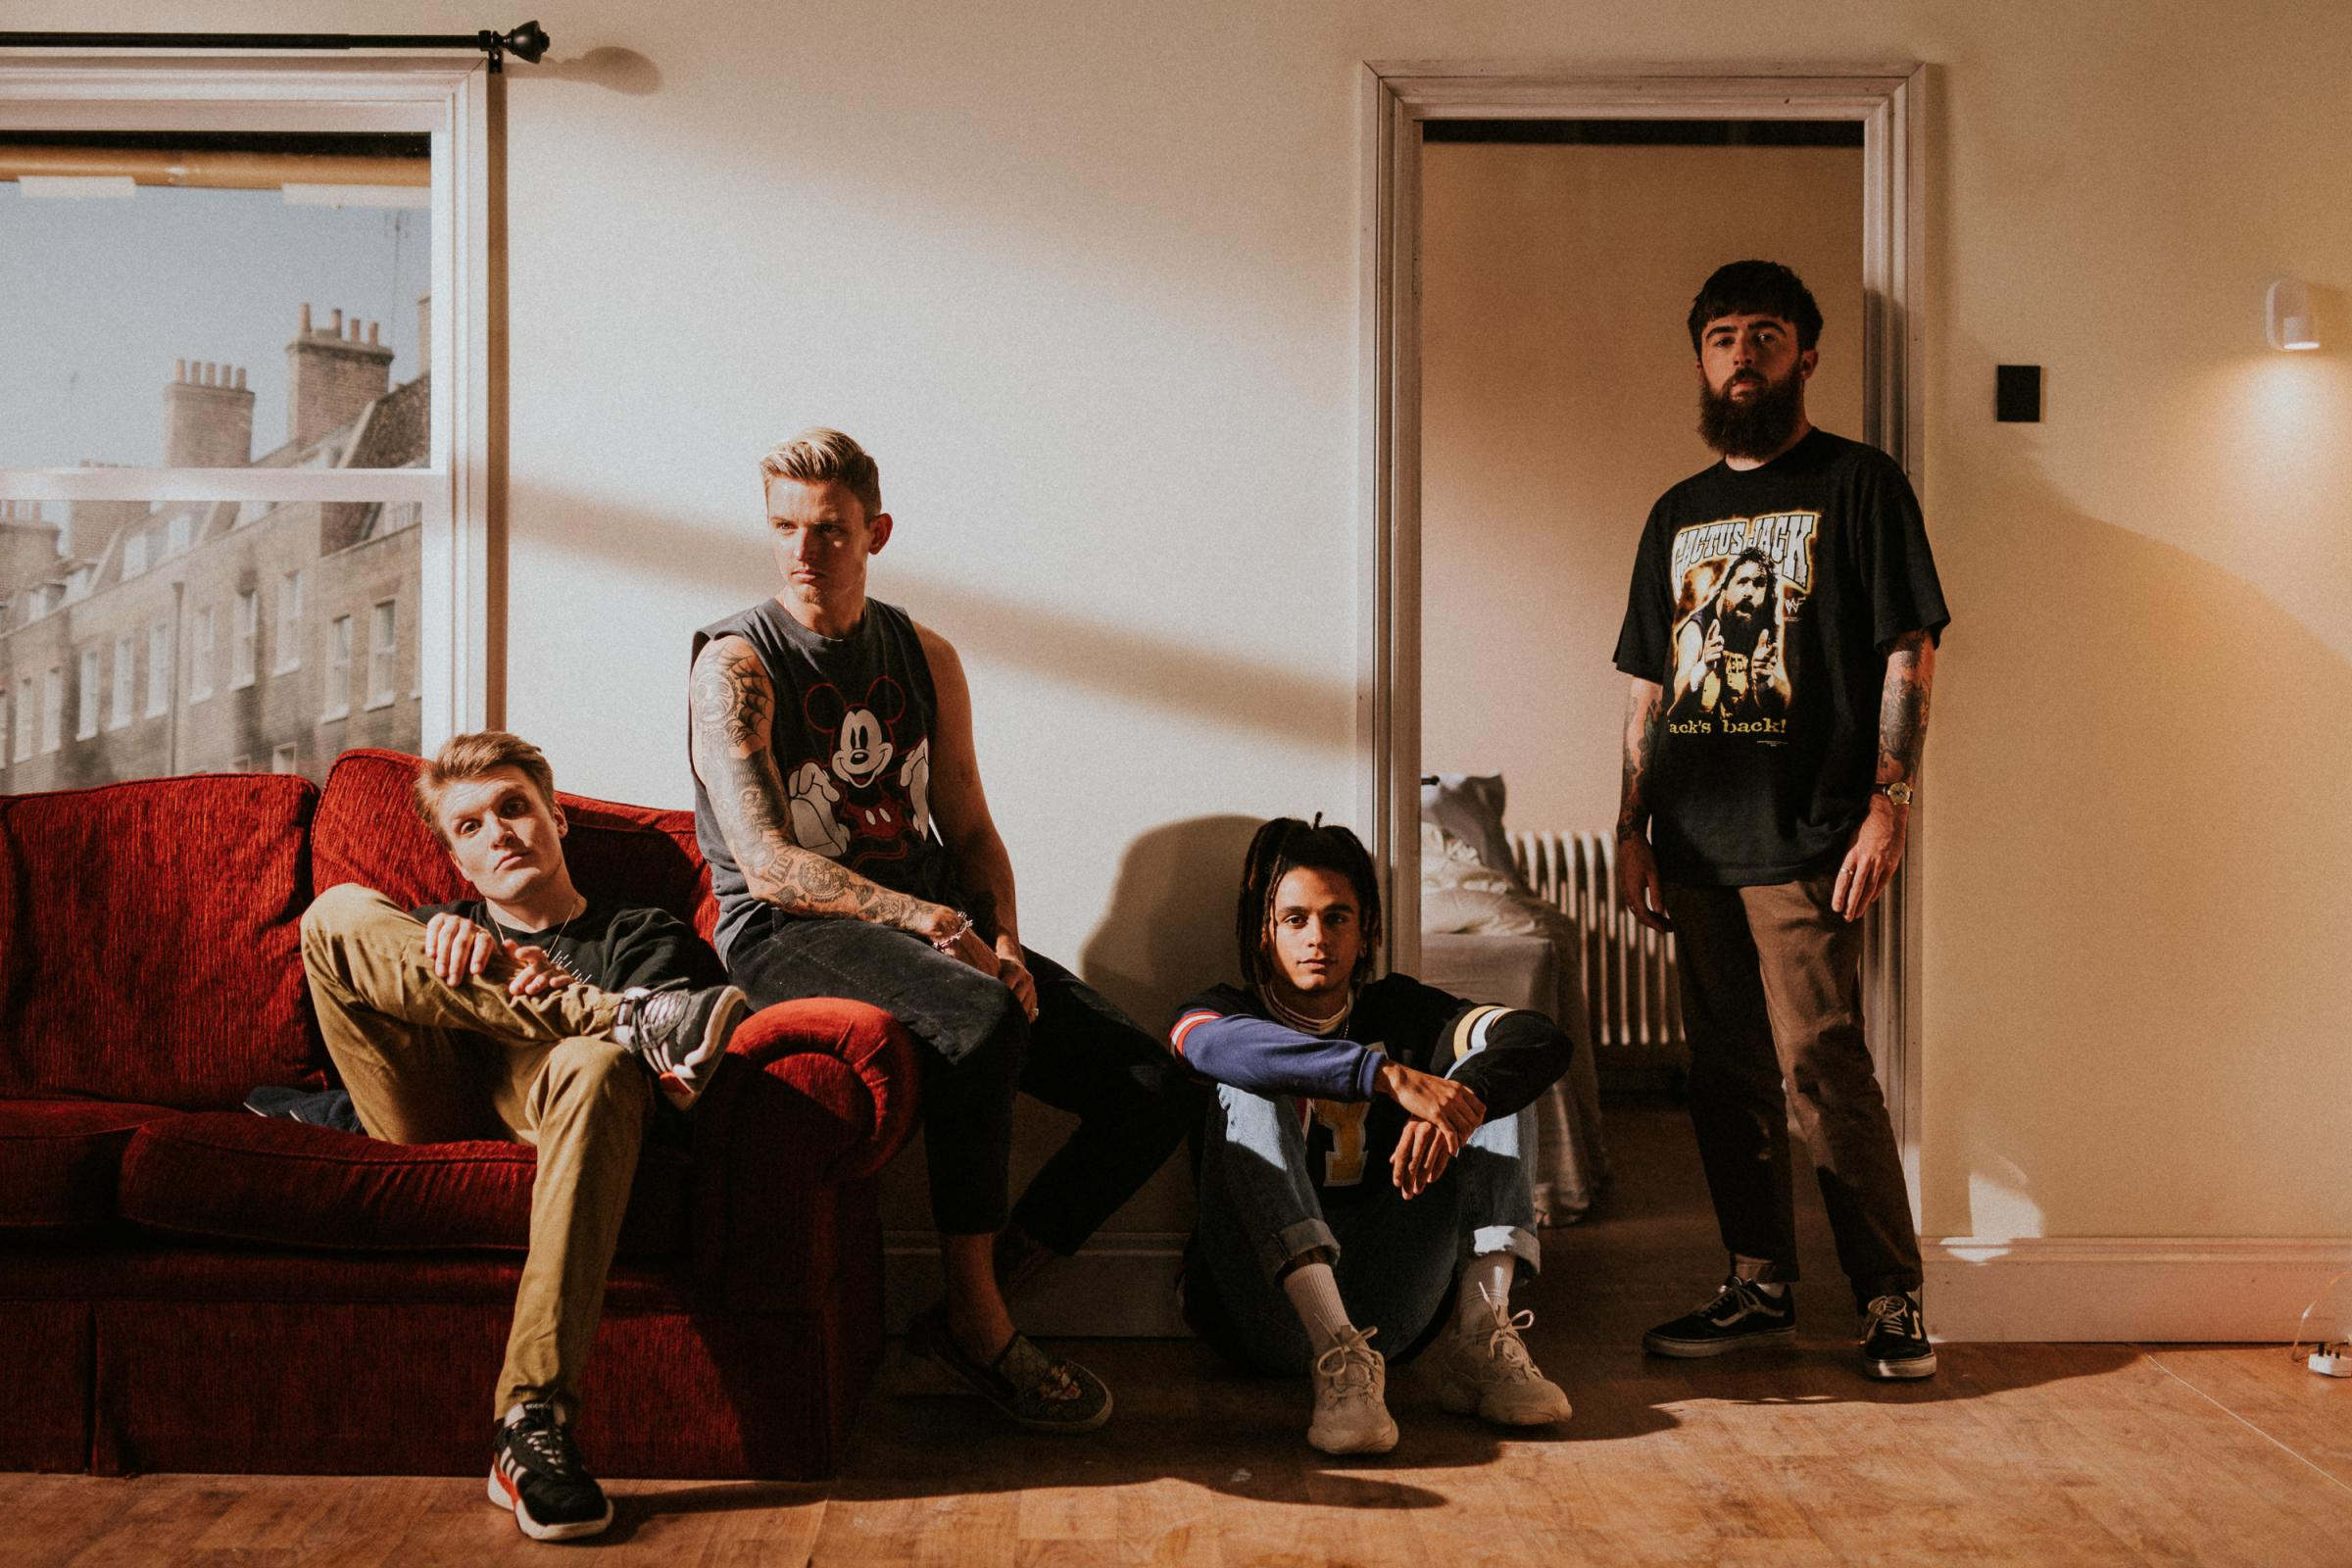 Wrexham band Neck Deep to tour around America